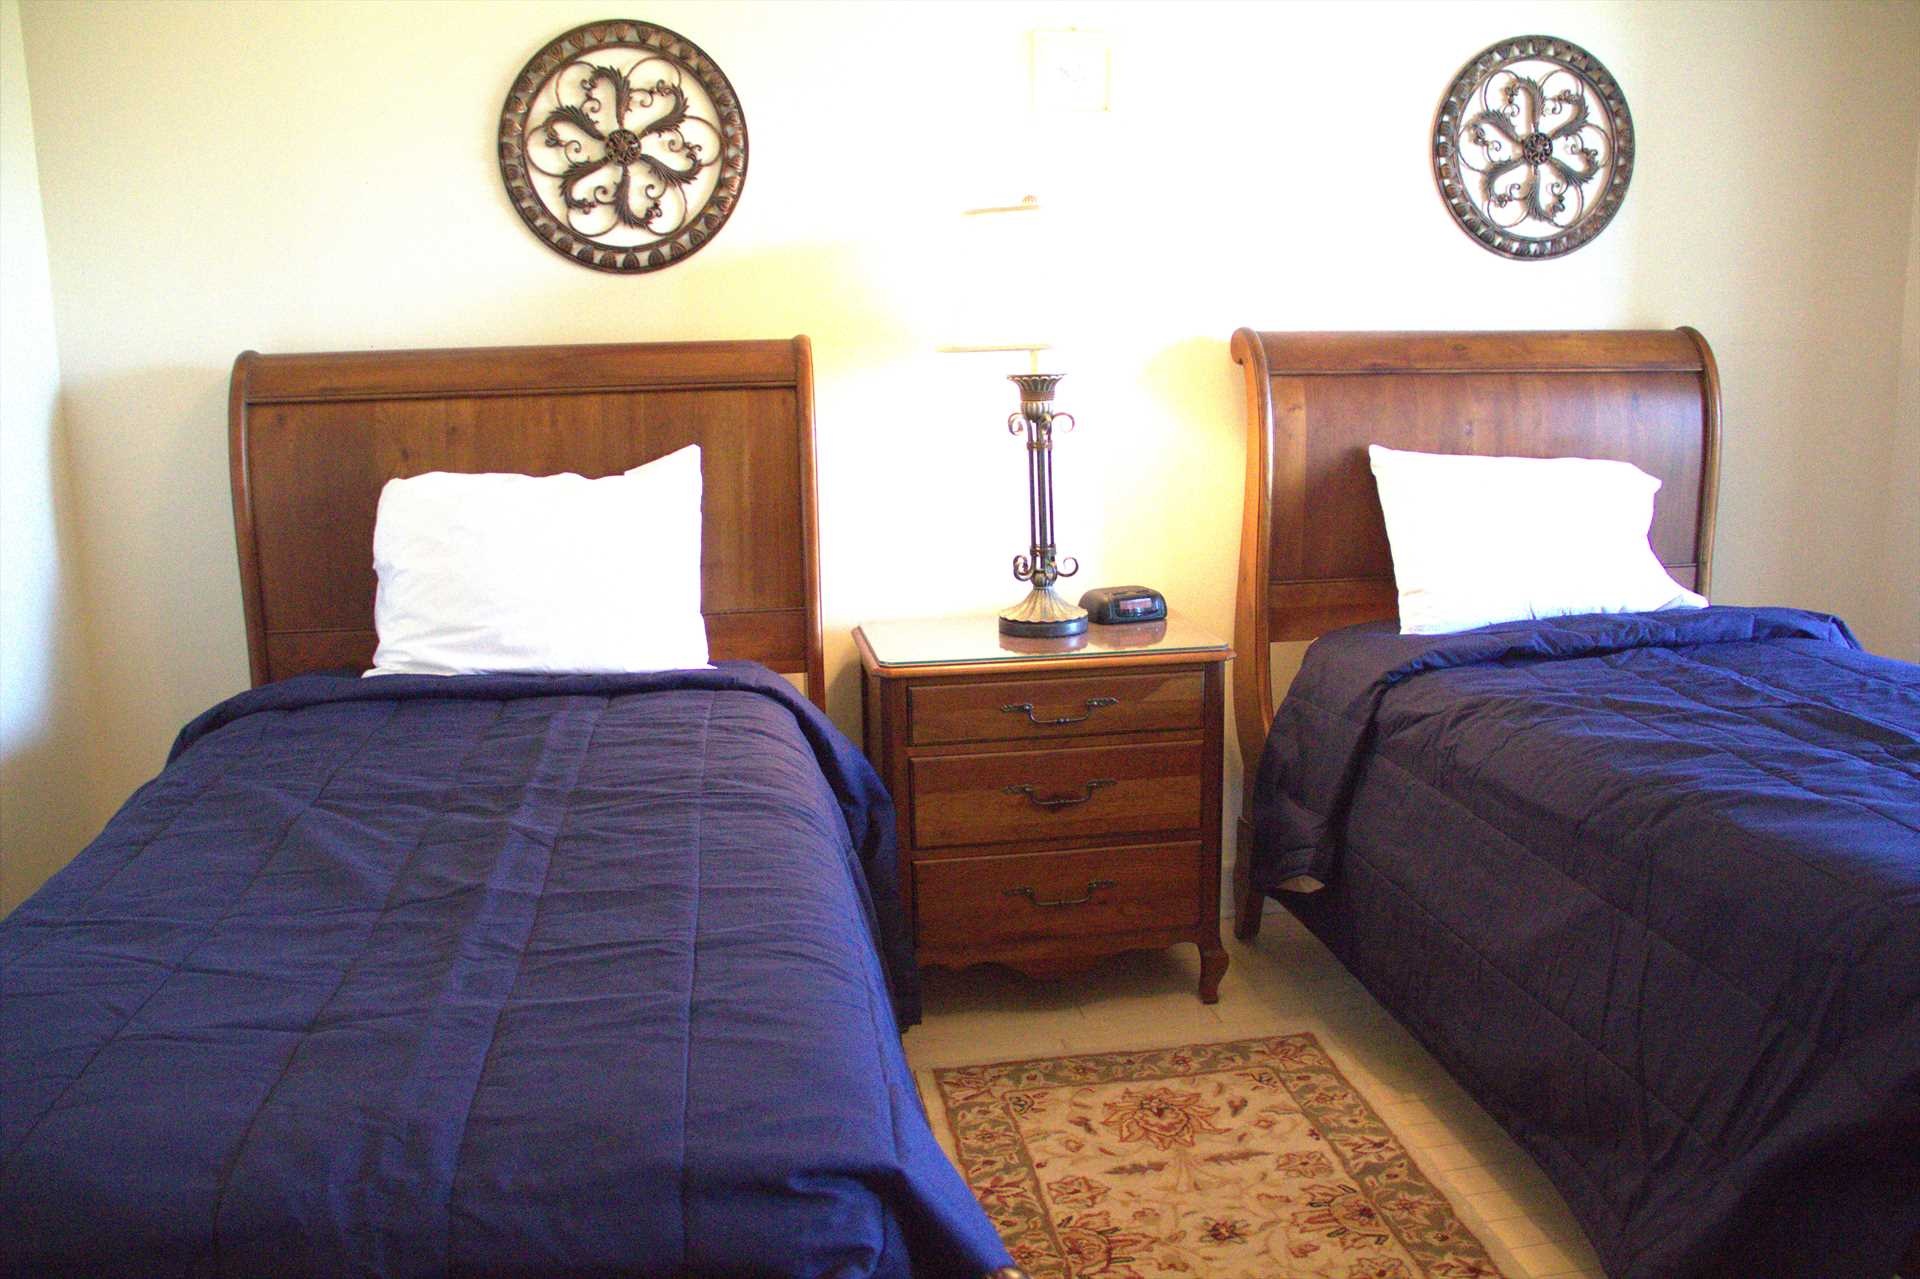 The 2nd bedroom has twin beds